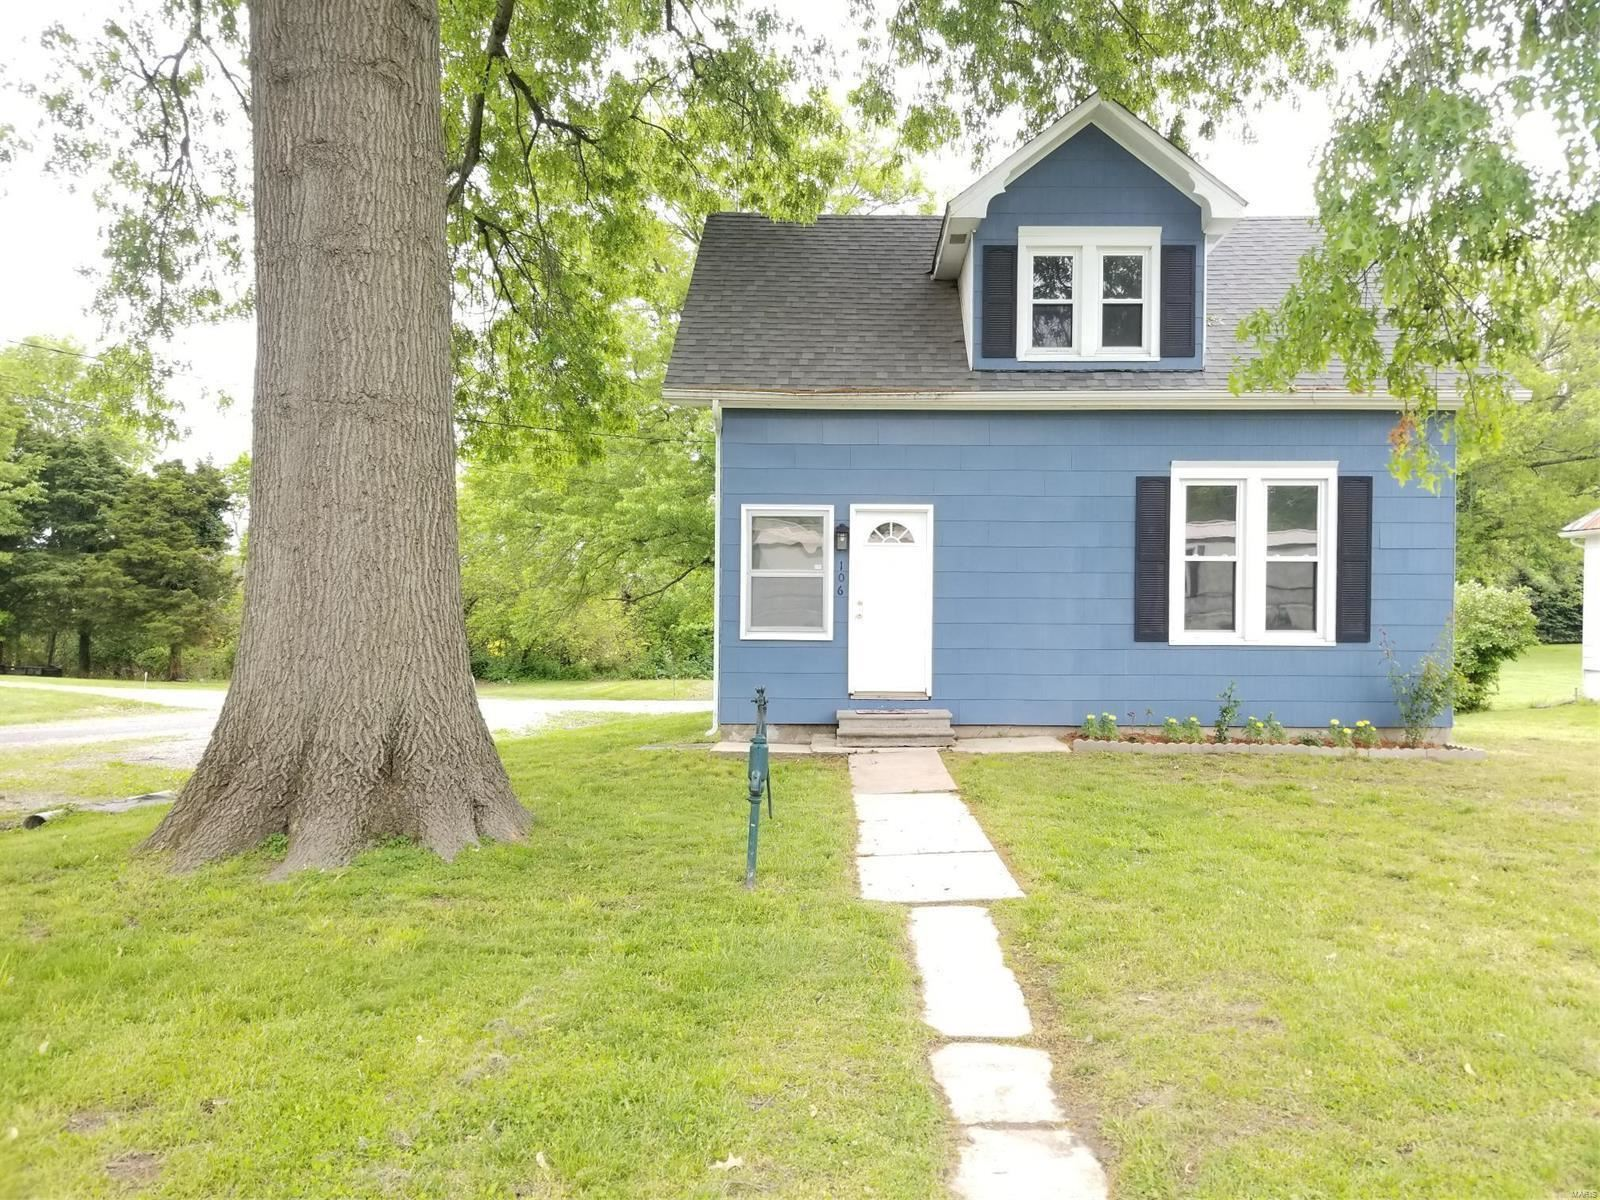 Photo for 106 North Washington Avenue, Okawville, IL 62271 (MLS # 20031551)